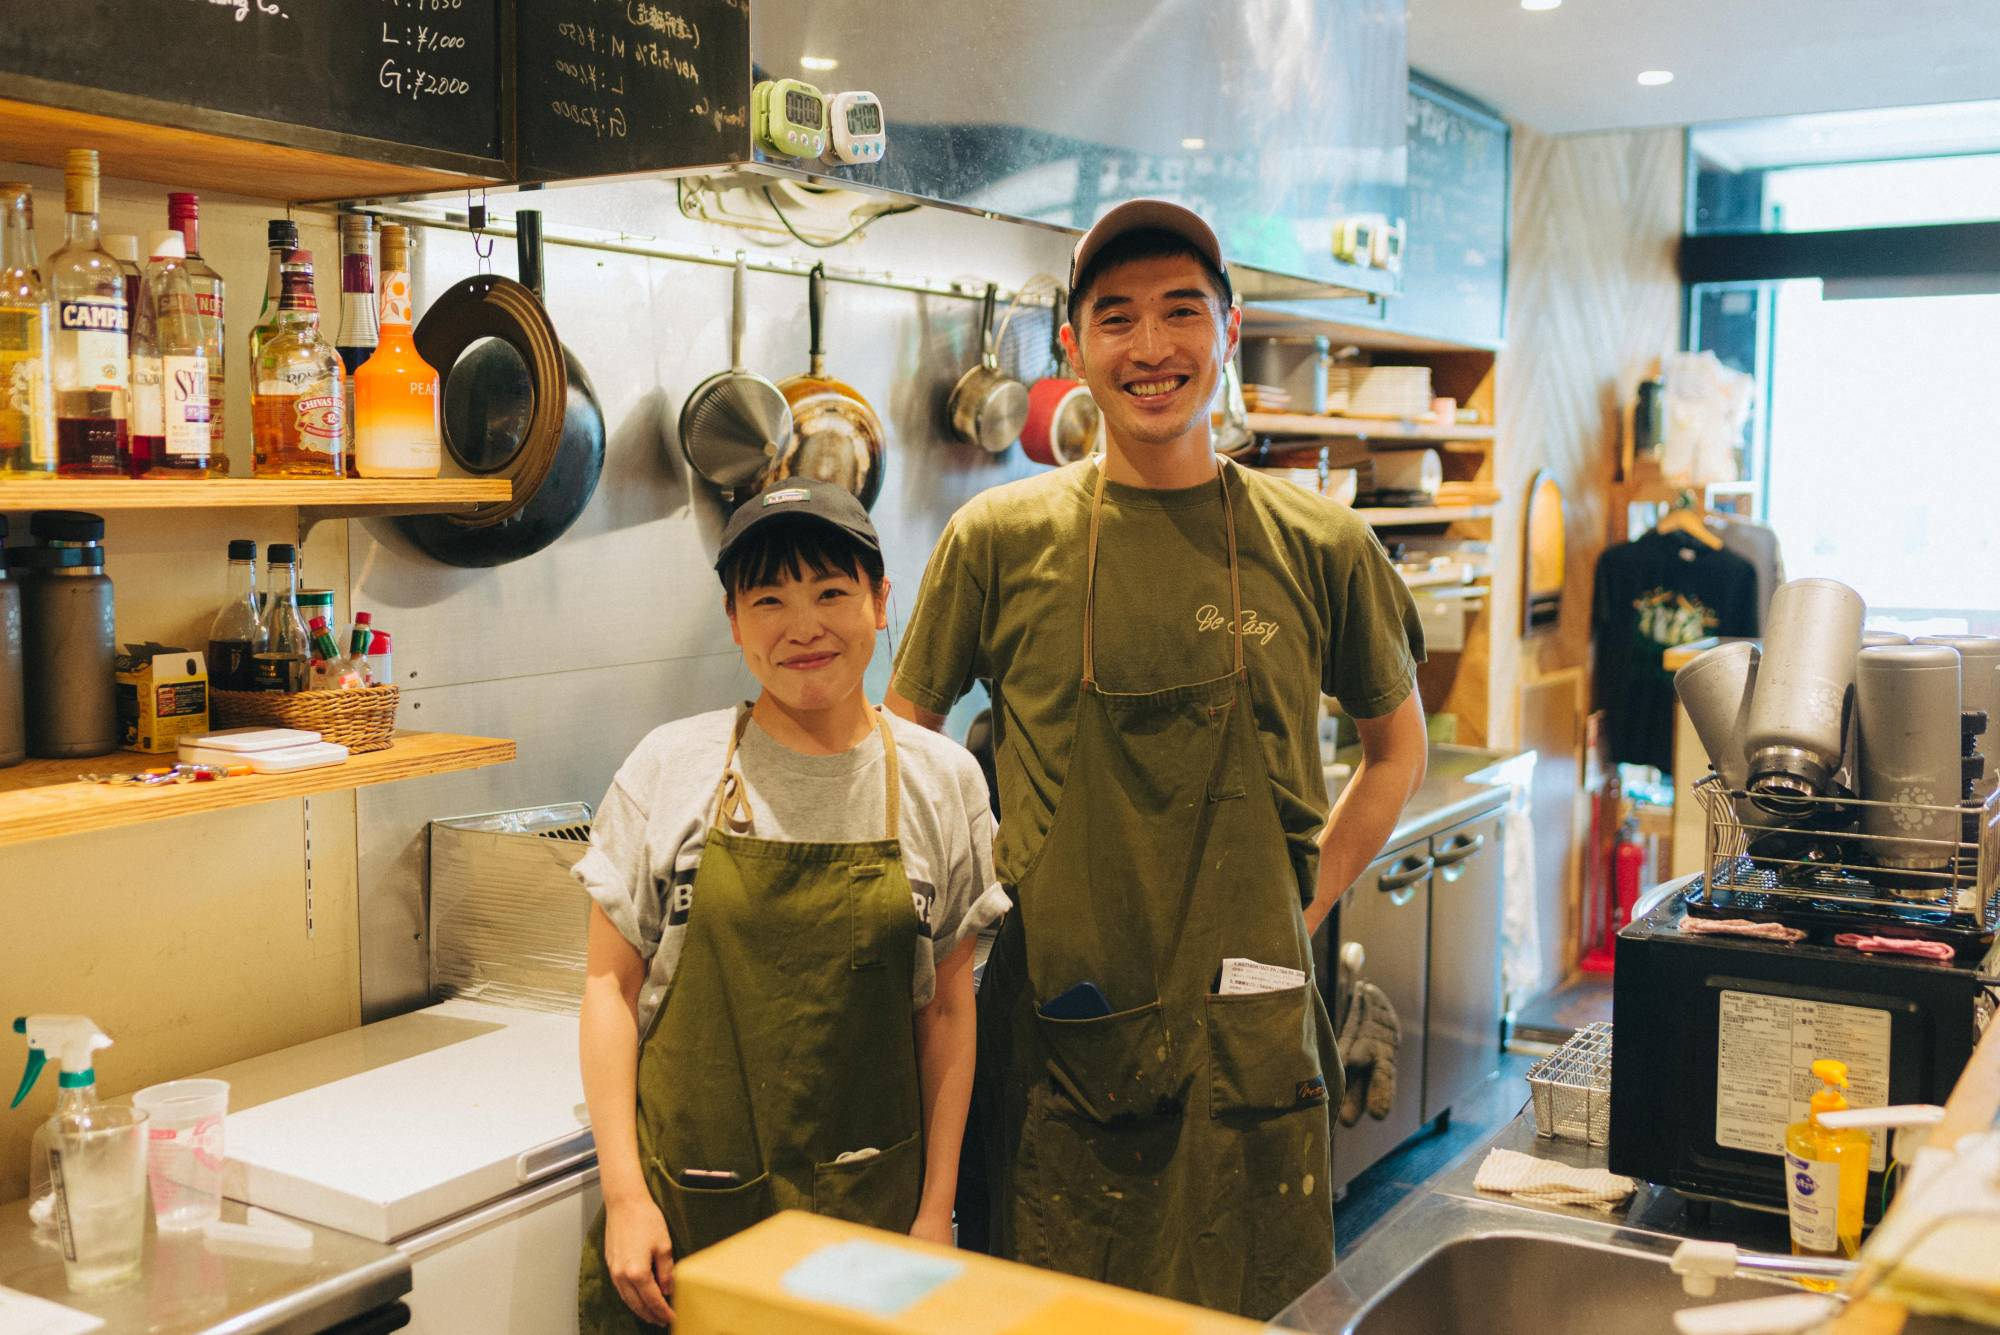 Daisuke Hakamada (right) co-founded brewpub Tono Brewing, which produces around 25 beers a year made with locally grown hops. | KATSUSUKE NISHINA